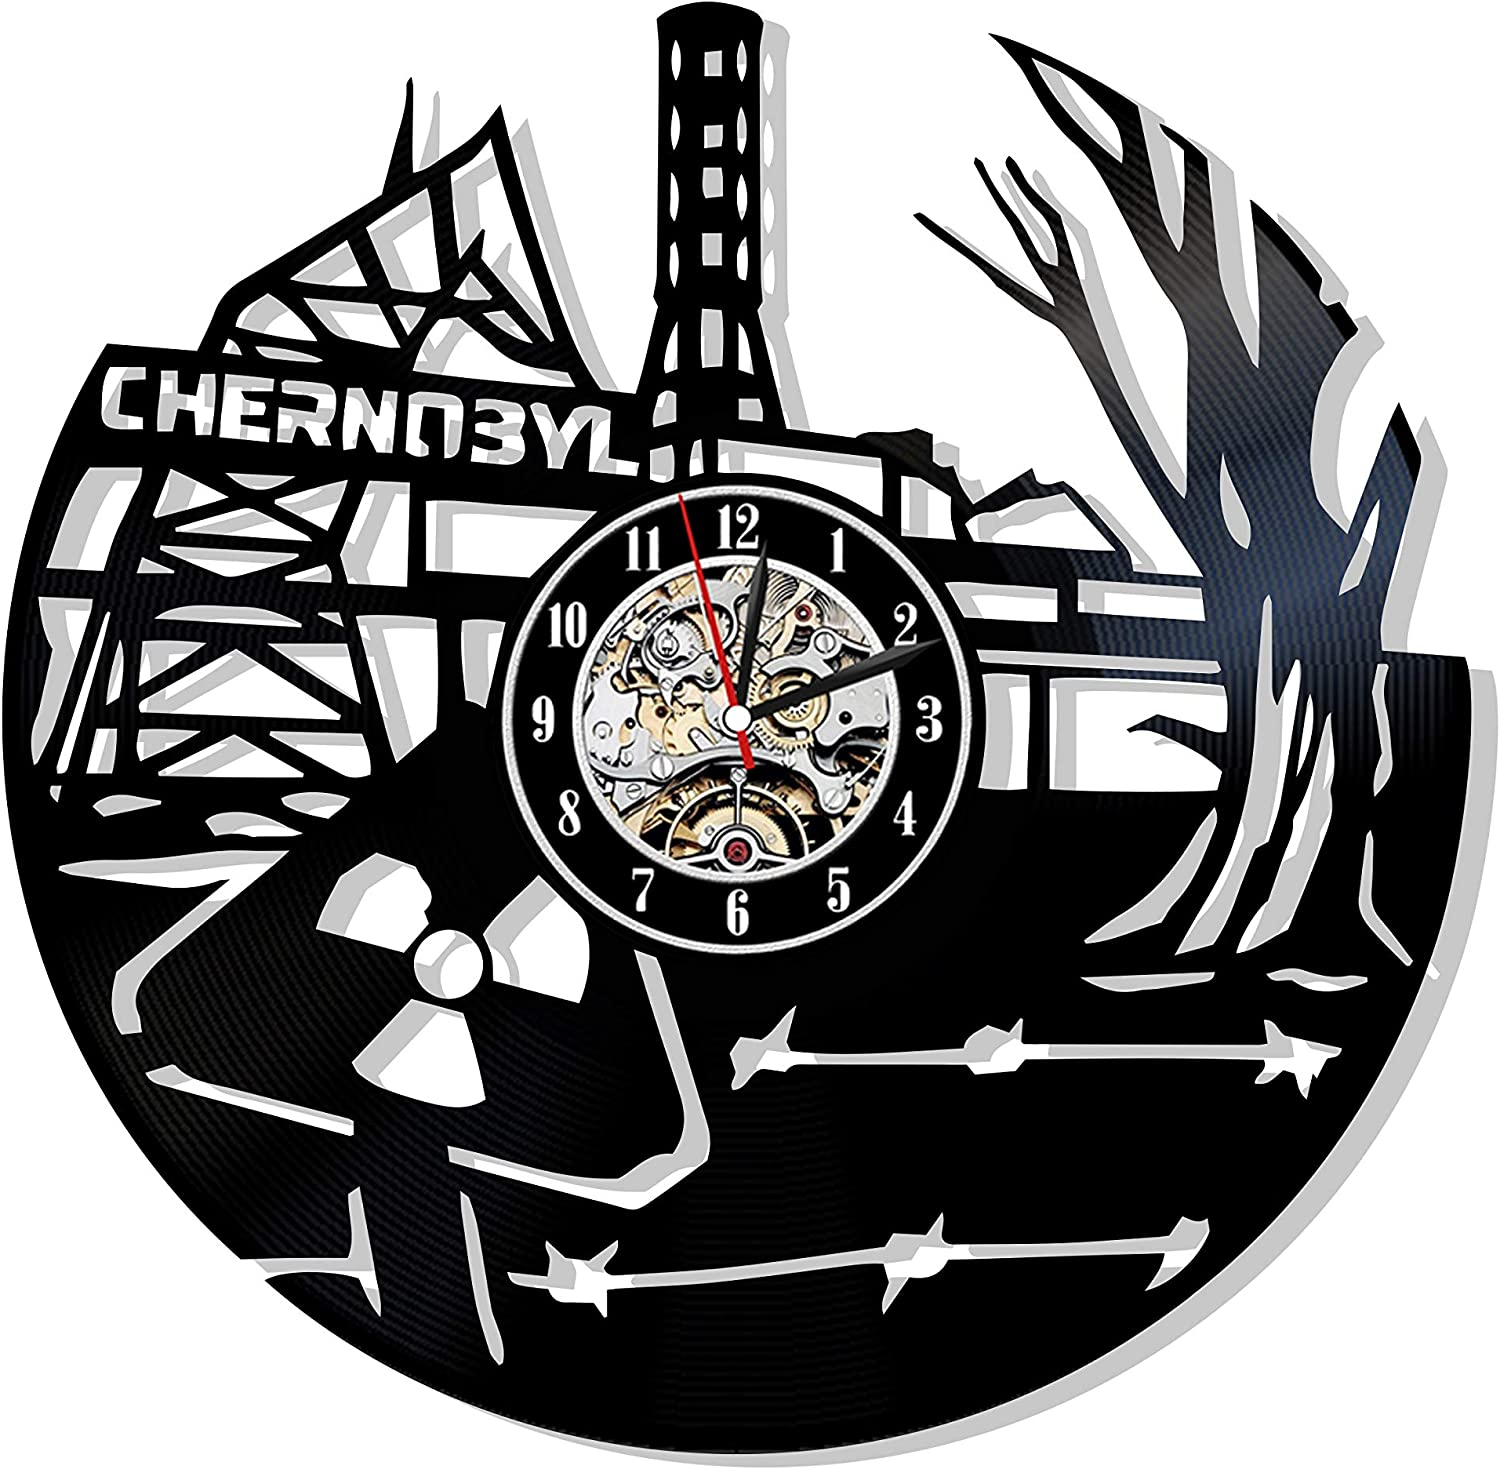 Levescale - Chernobyl Vinyl Wall Clock Nuclear - Perfect Power Plant Gift for Scientist - Decoration for Office, Classroom - Radiation Reactor Ukraine Pripyat Radioactive Exclusion